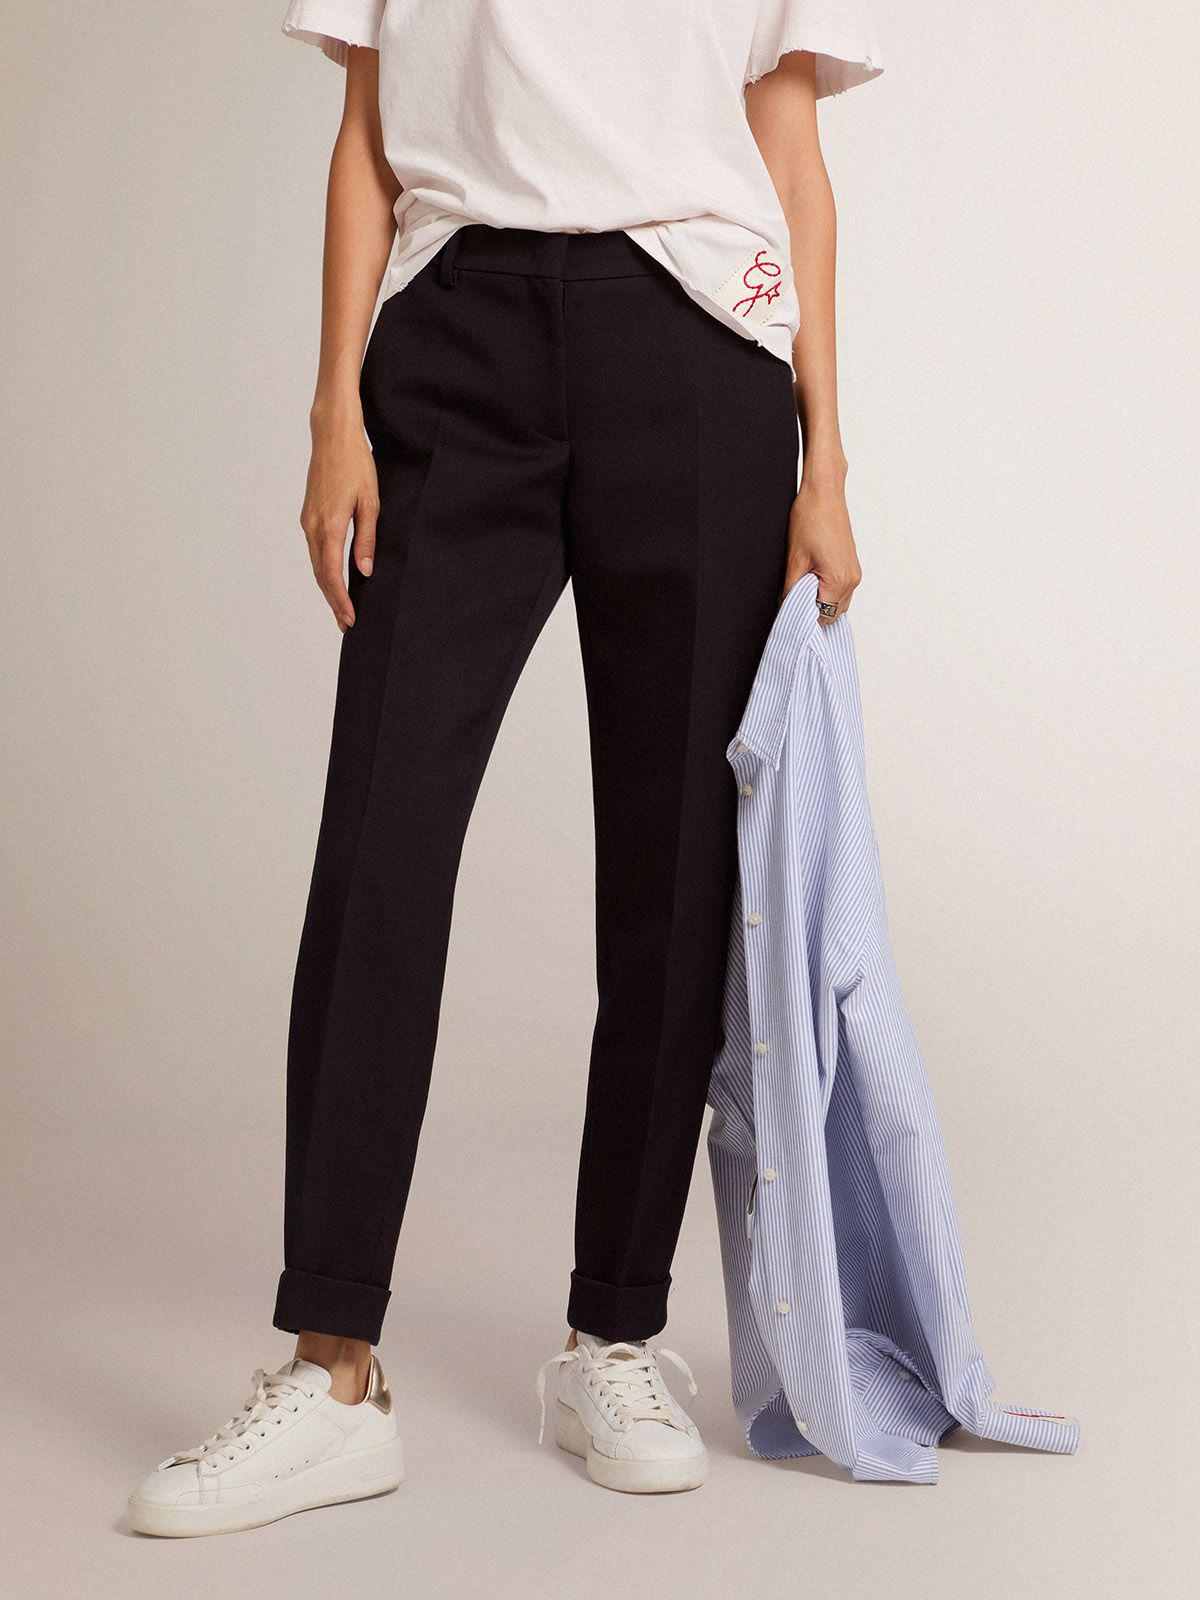 Golden Collection cigarette pants in dark blue wool